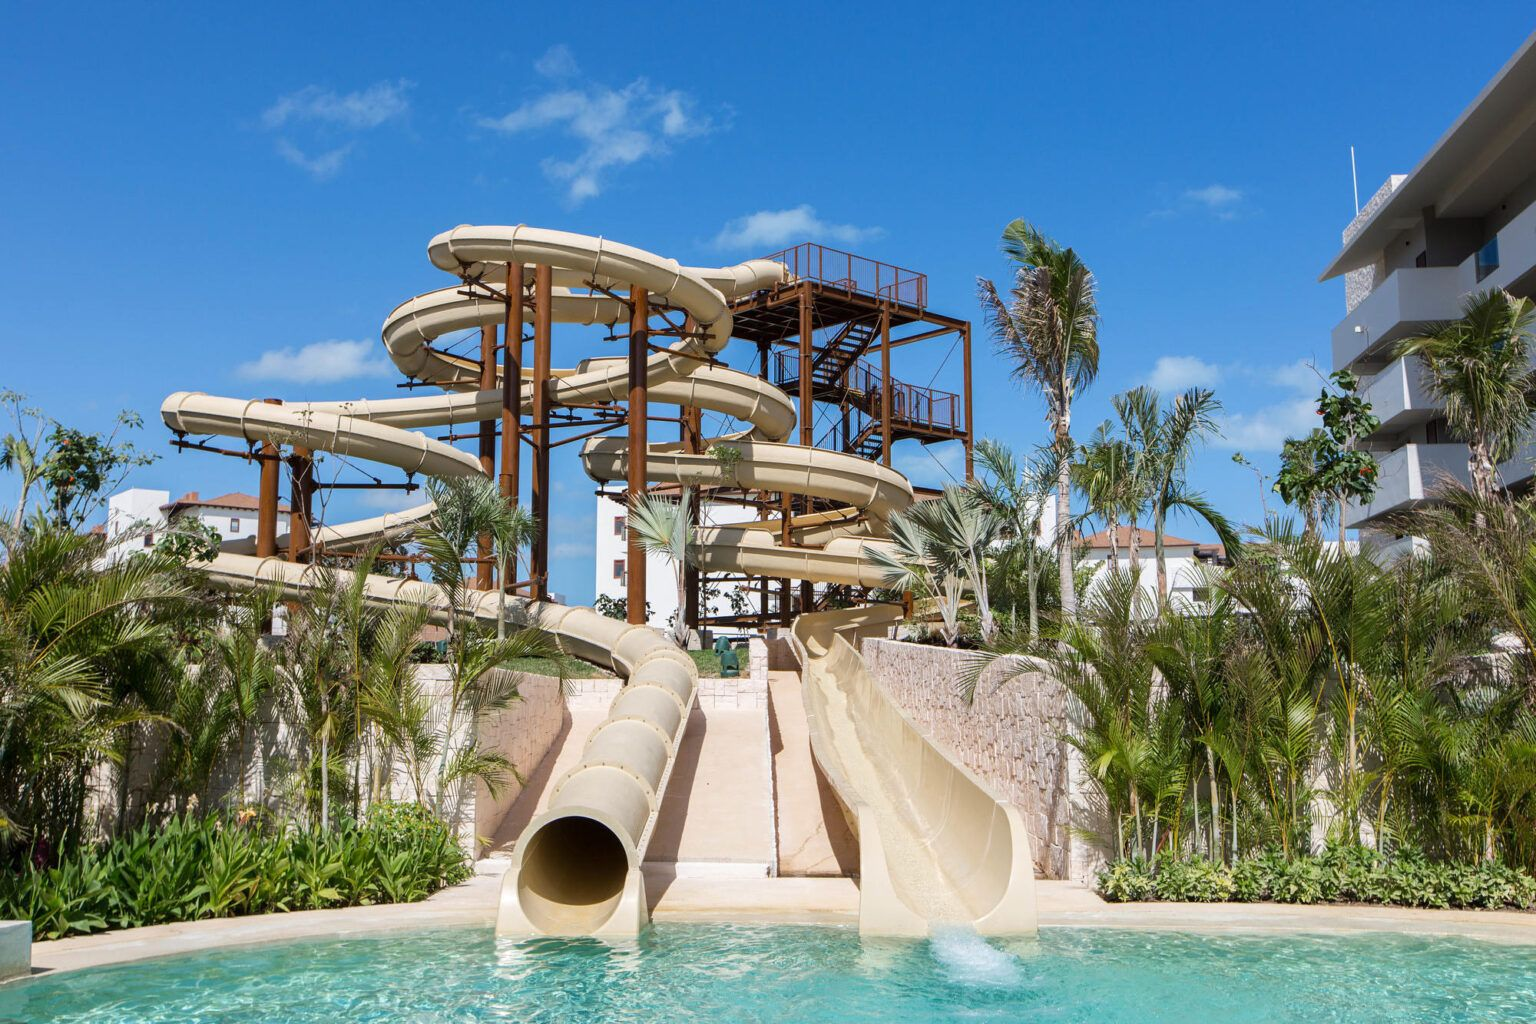 14 Best Mexico Hotels With Water Parks Hotels With Water Parks